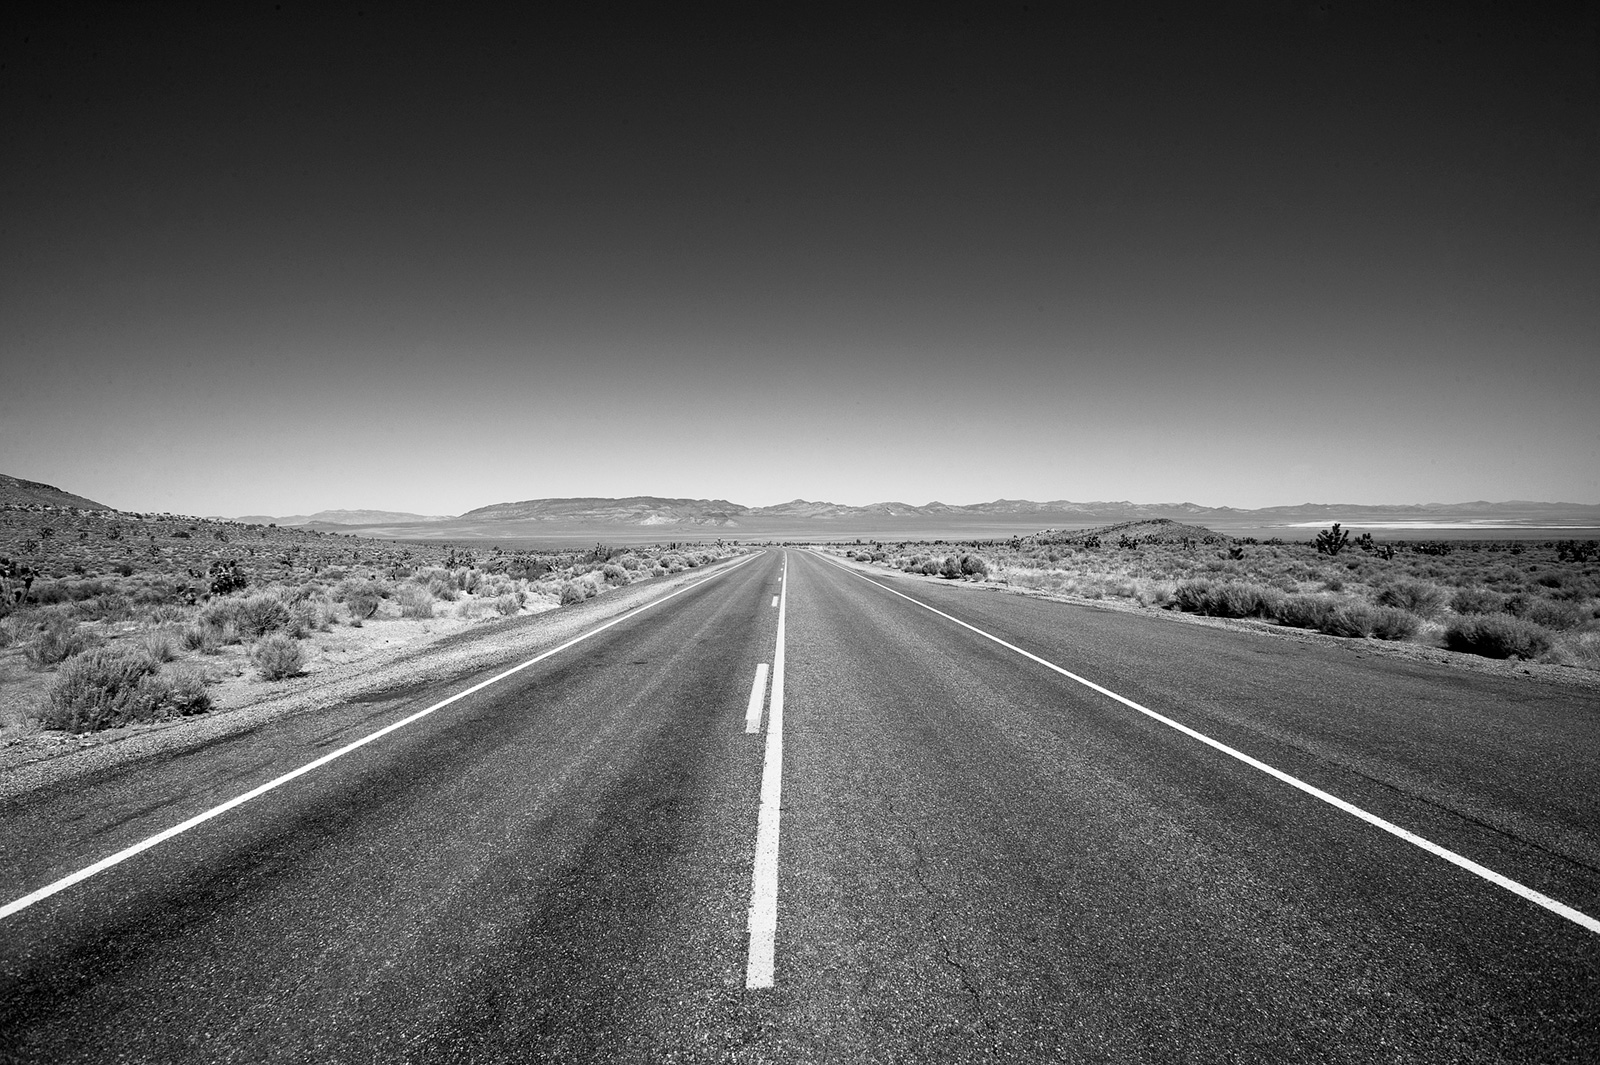 Define the shoulders of the road ahead.